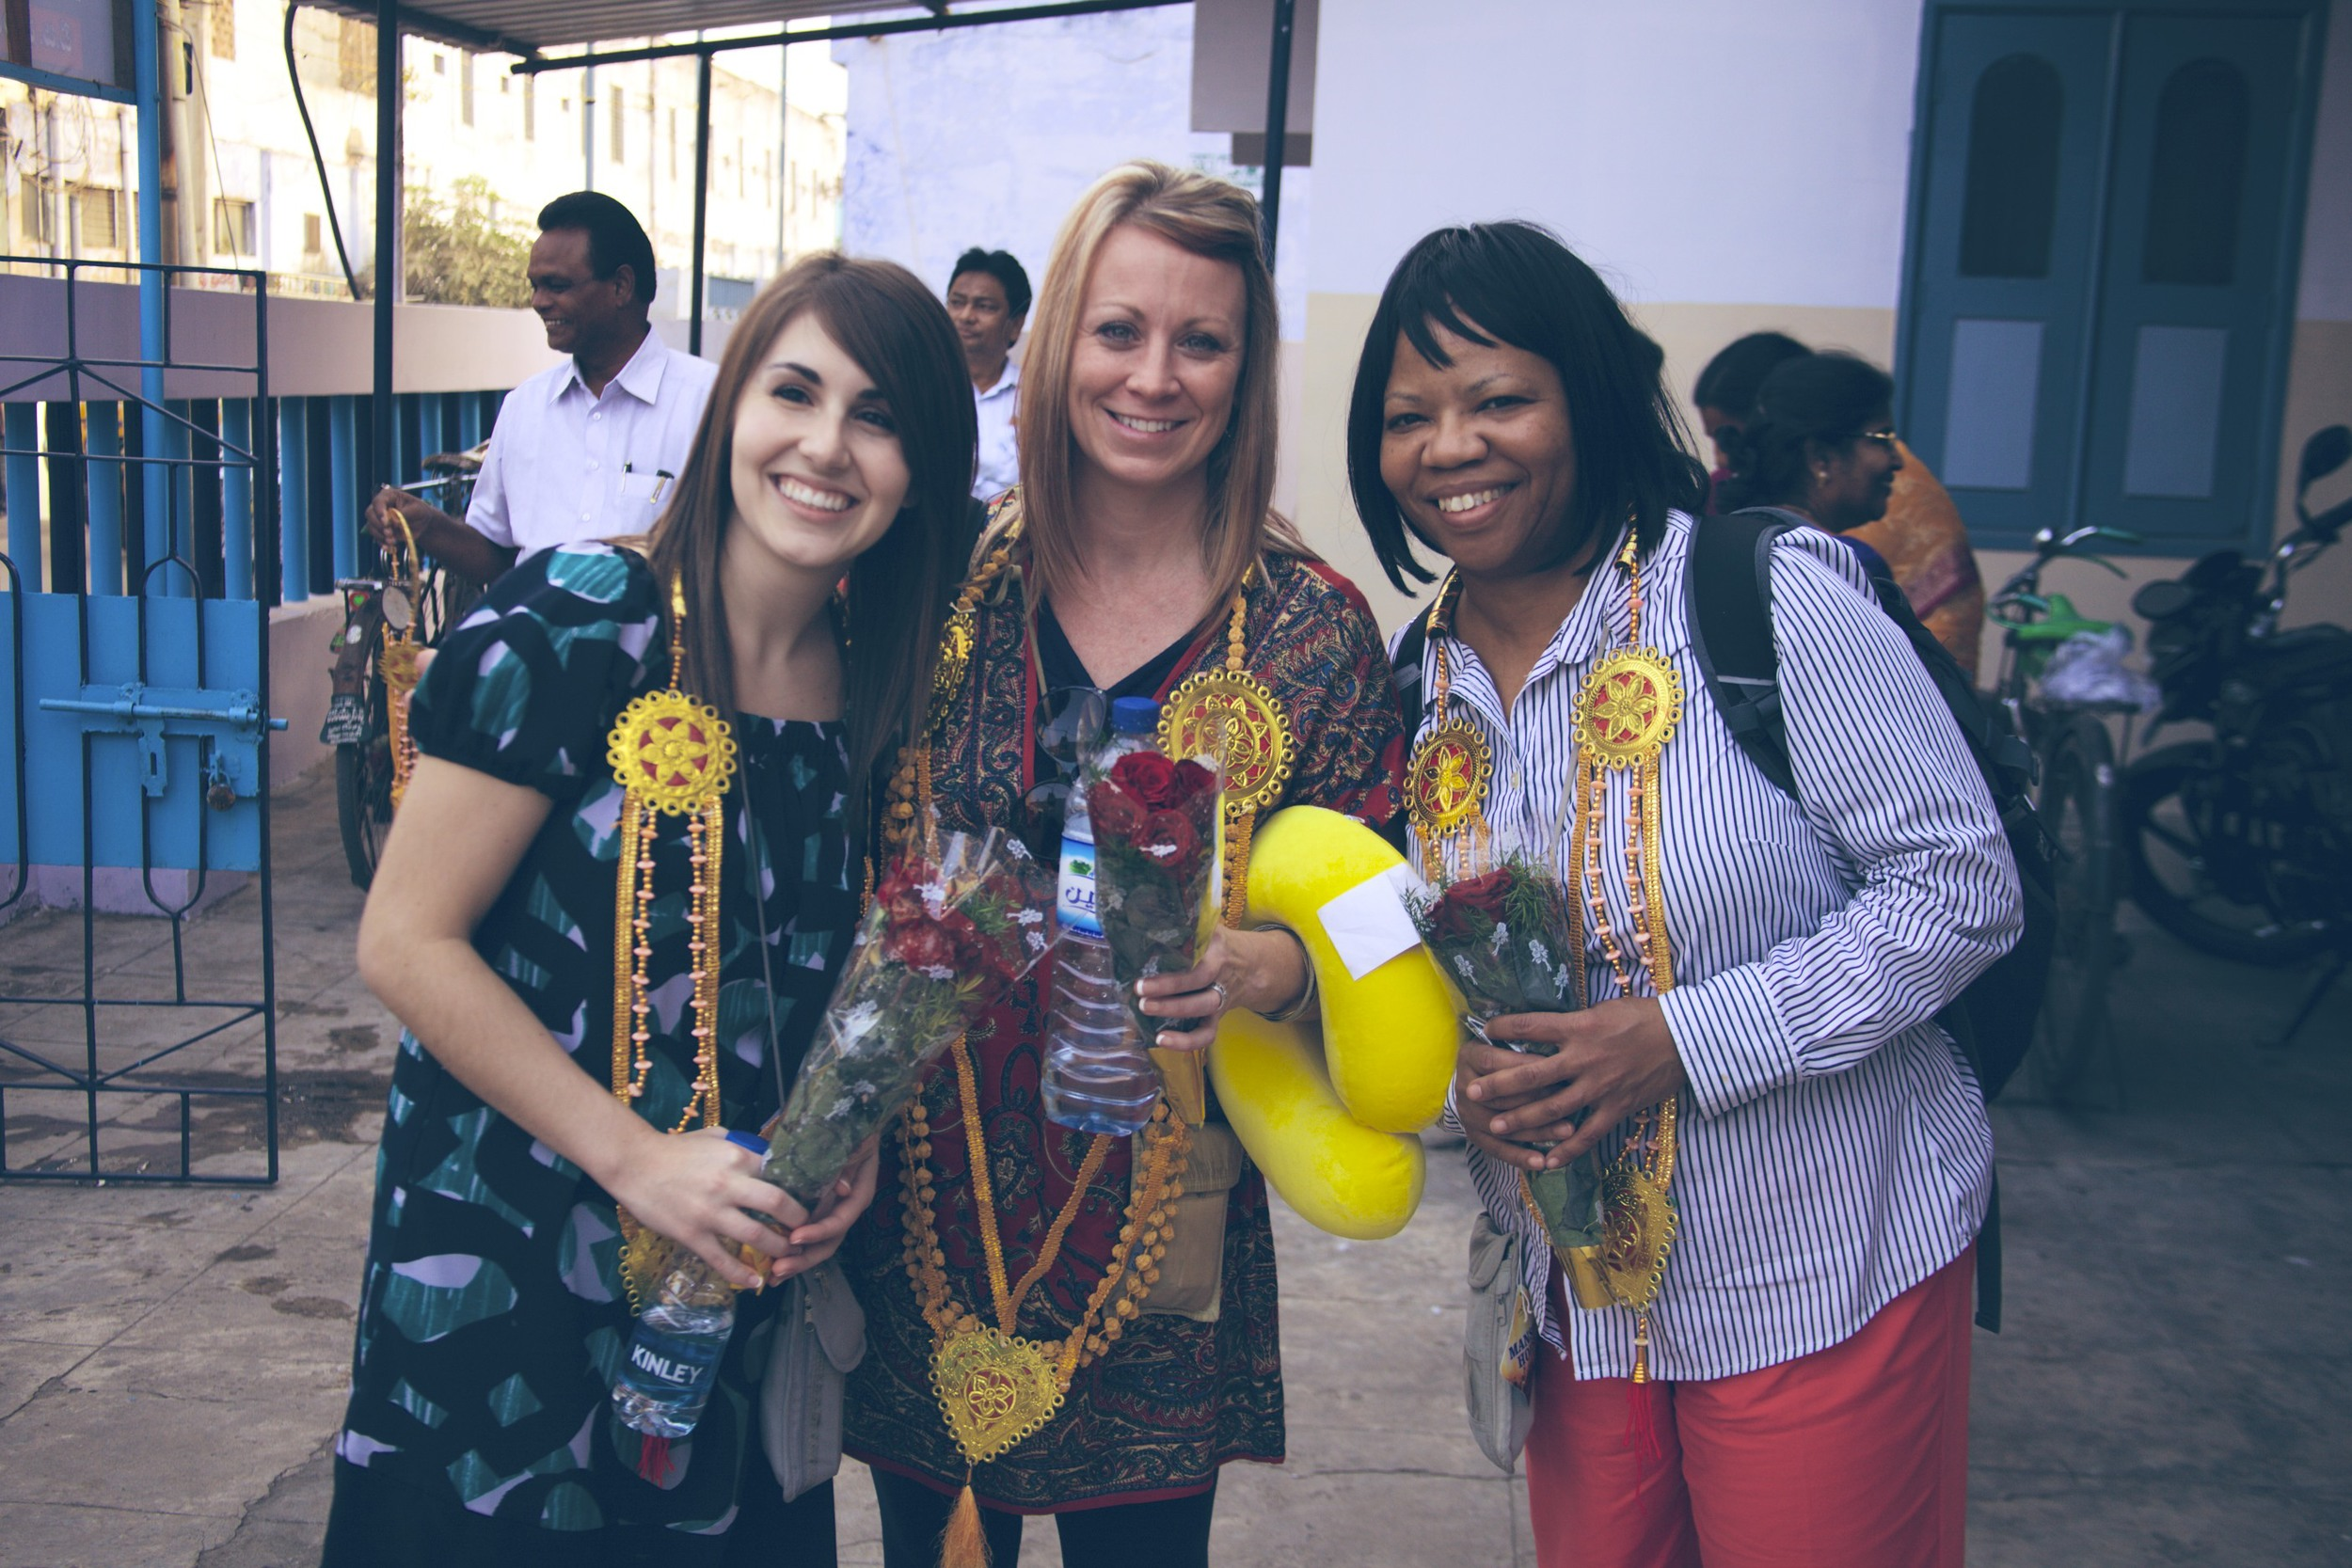 We were greeted with garlands and flowers.